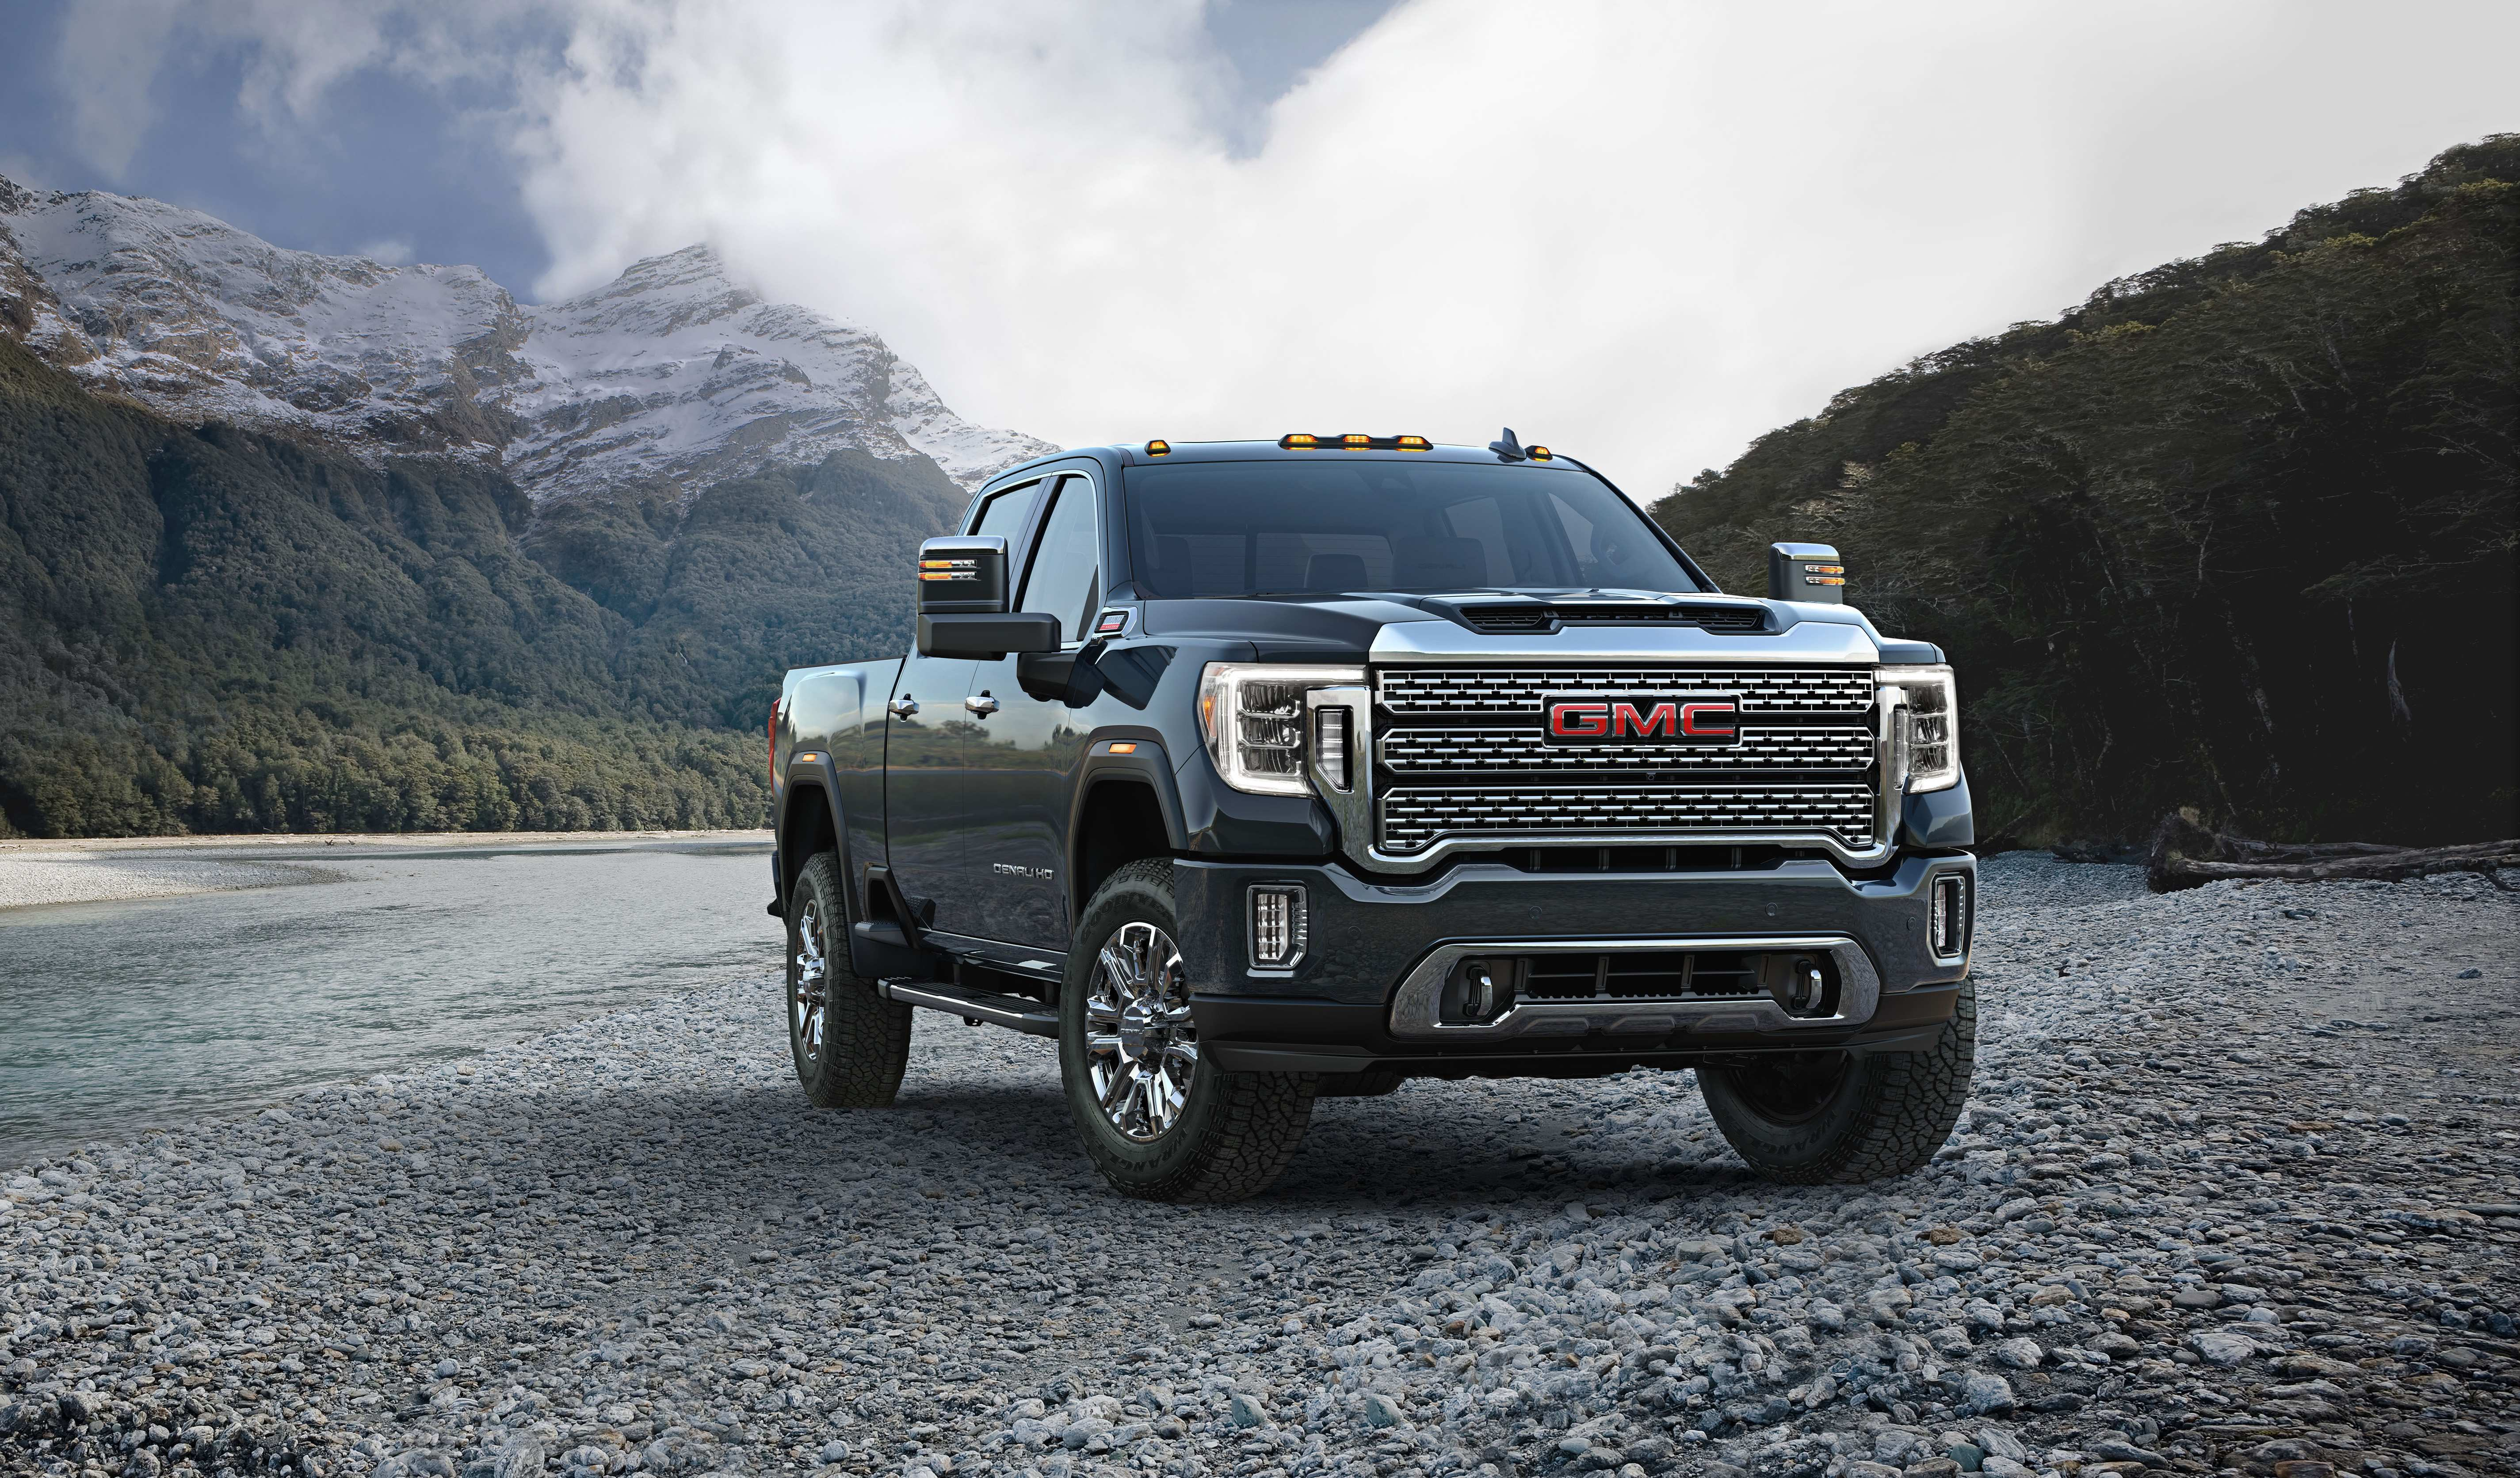 33 Best GMC Elevation 2020 Concept